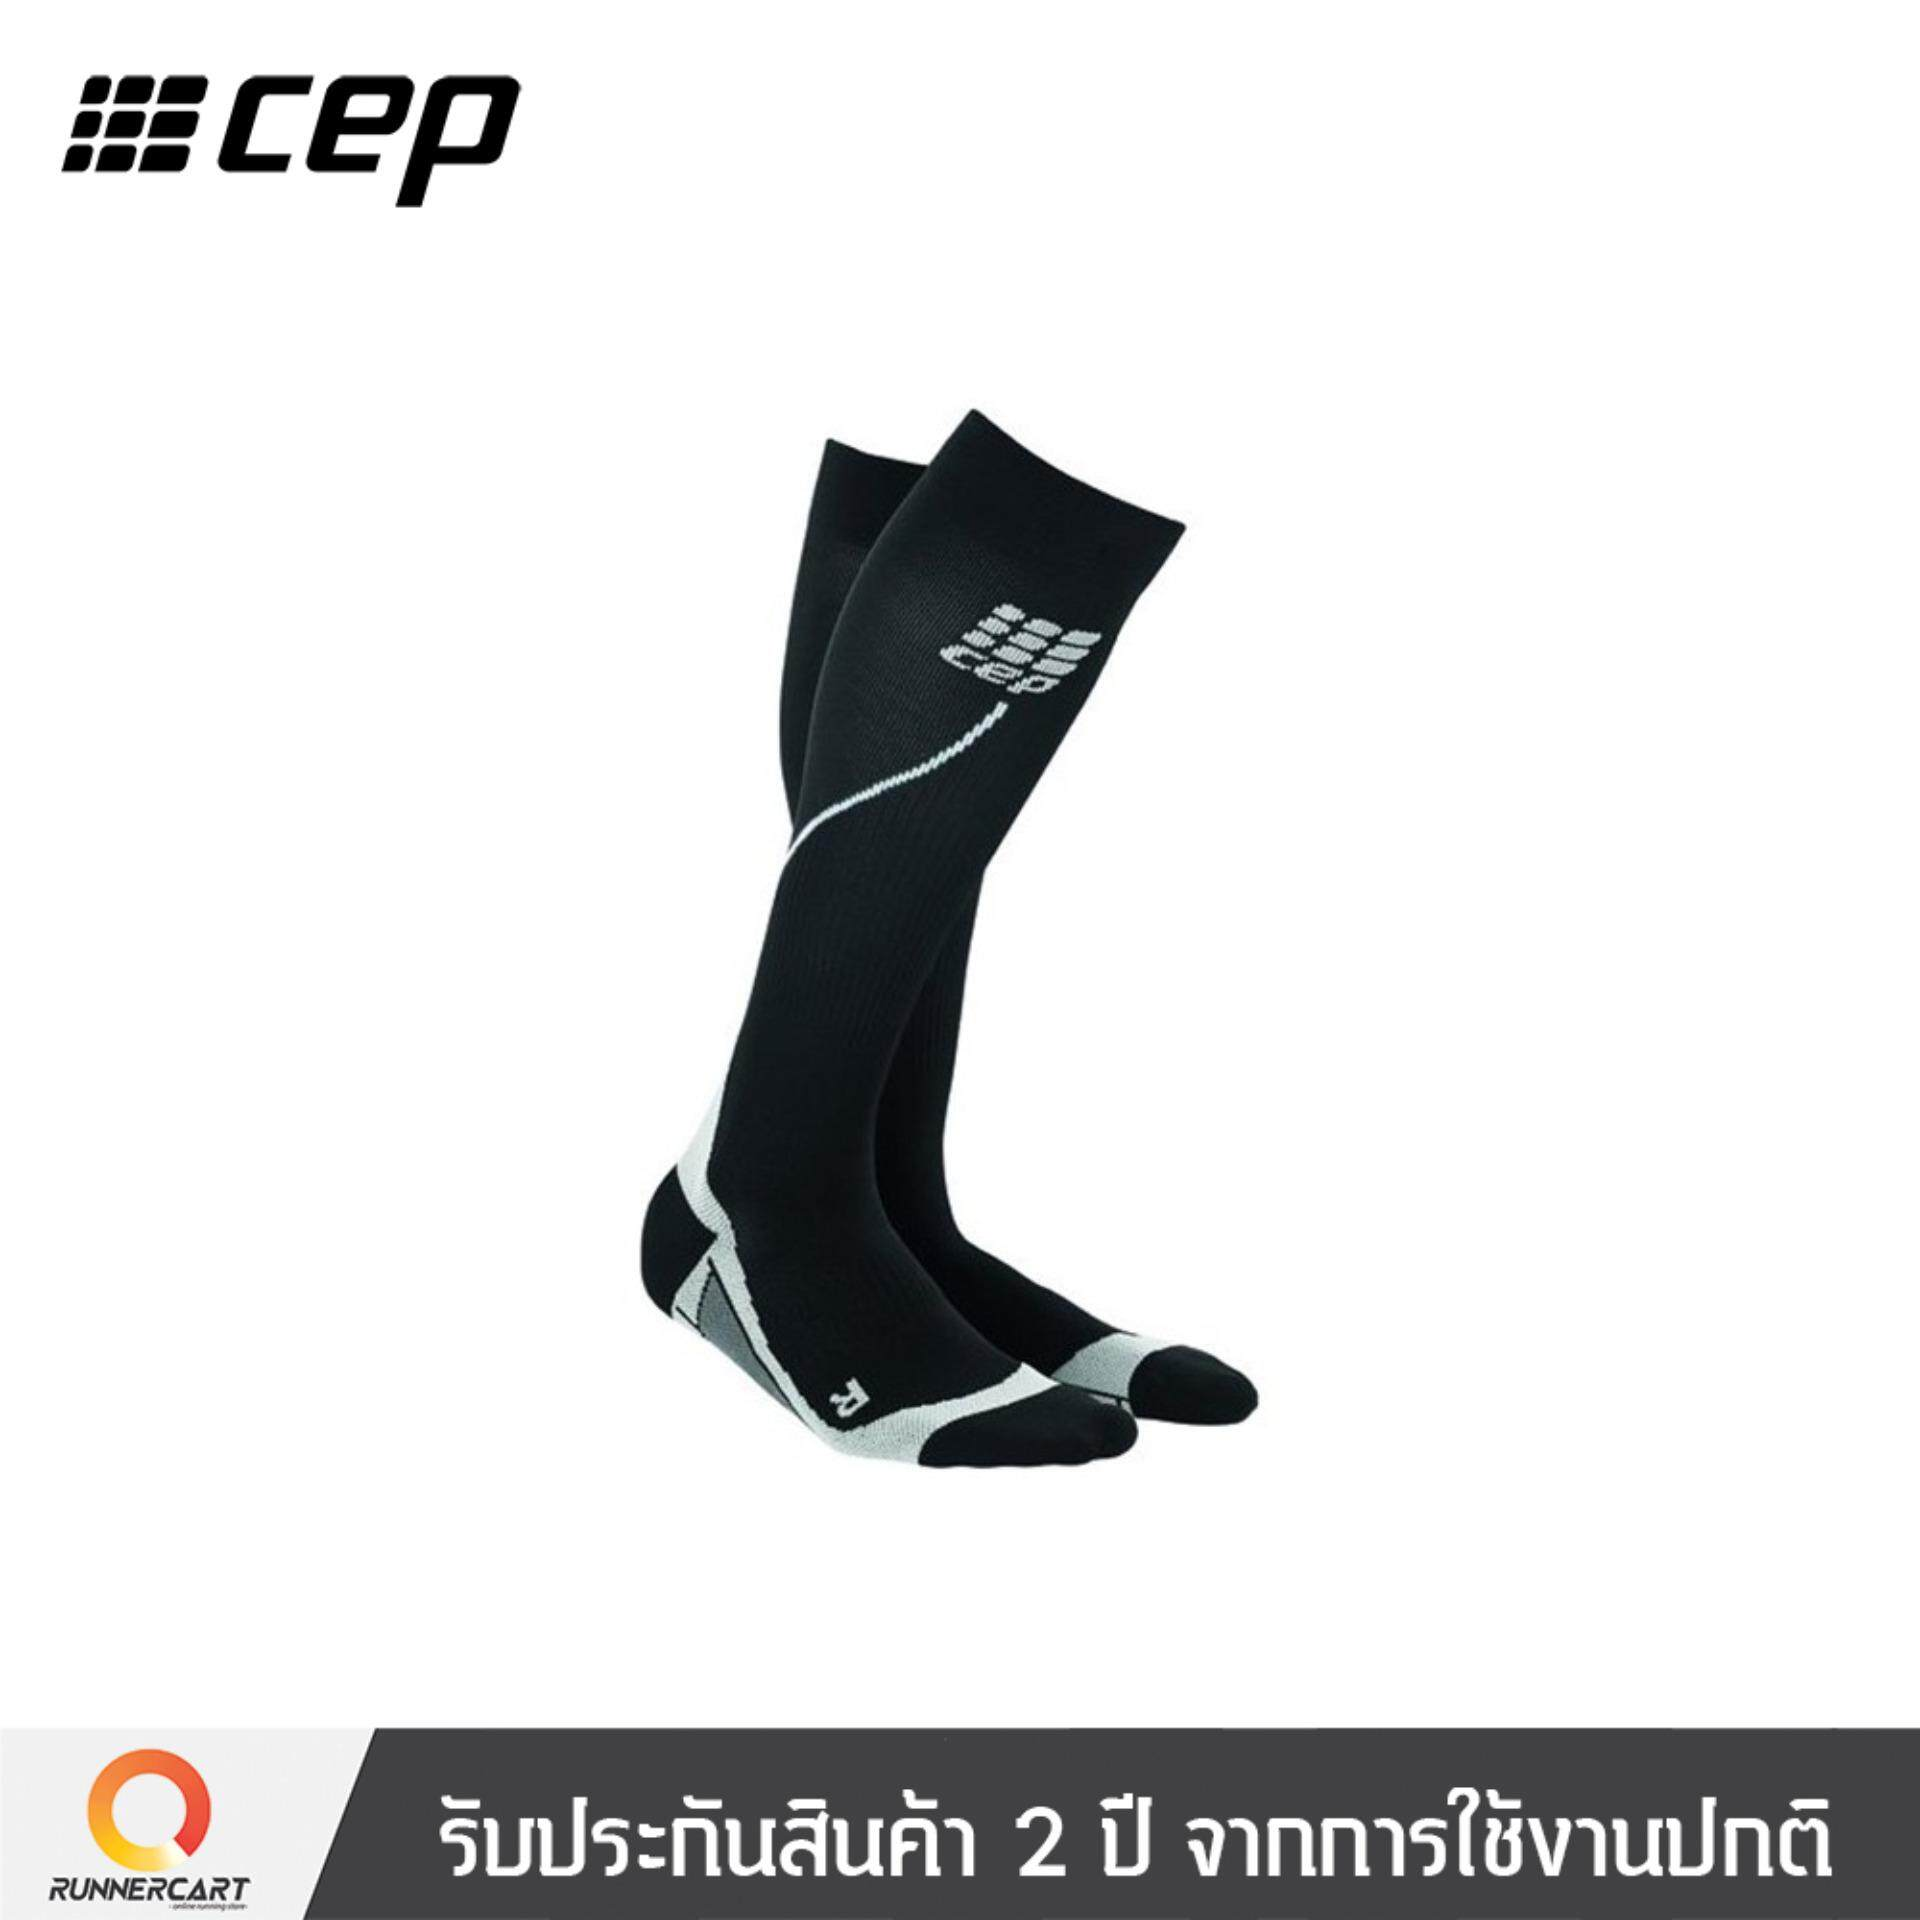 CEP Women's Compression Run Socks 2.0, Black/Grey